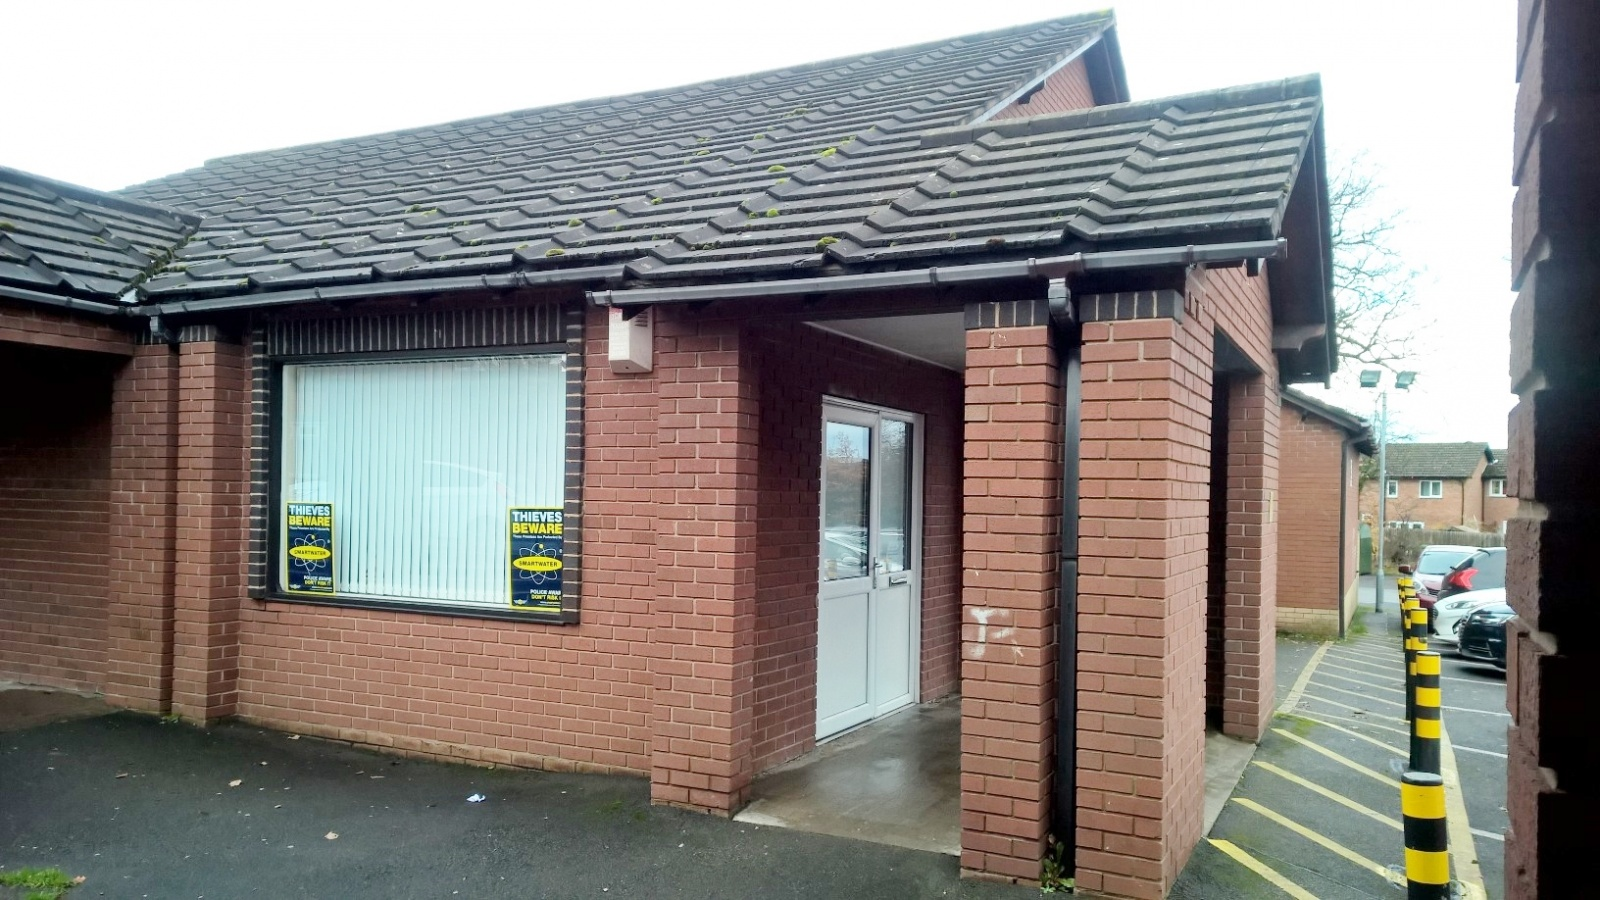 Unit 3, Pensfold Shopping Centre, Gains Park, Shrewsbury, Shropshire